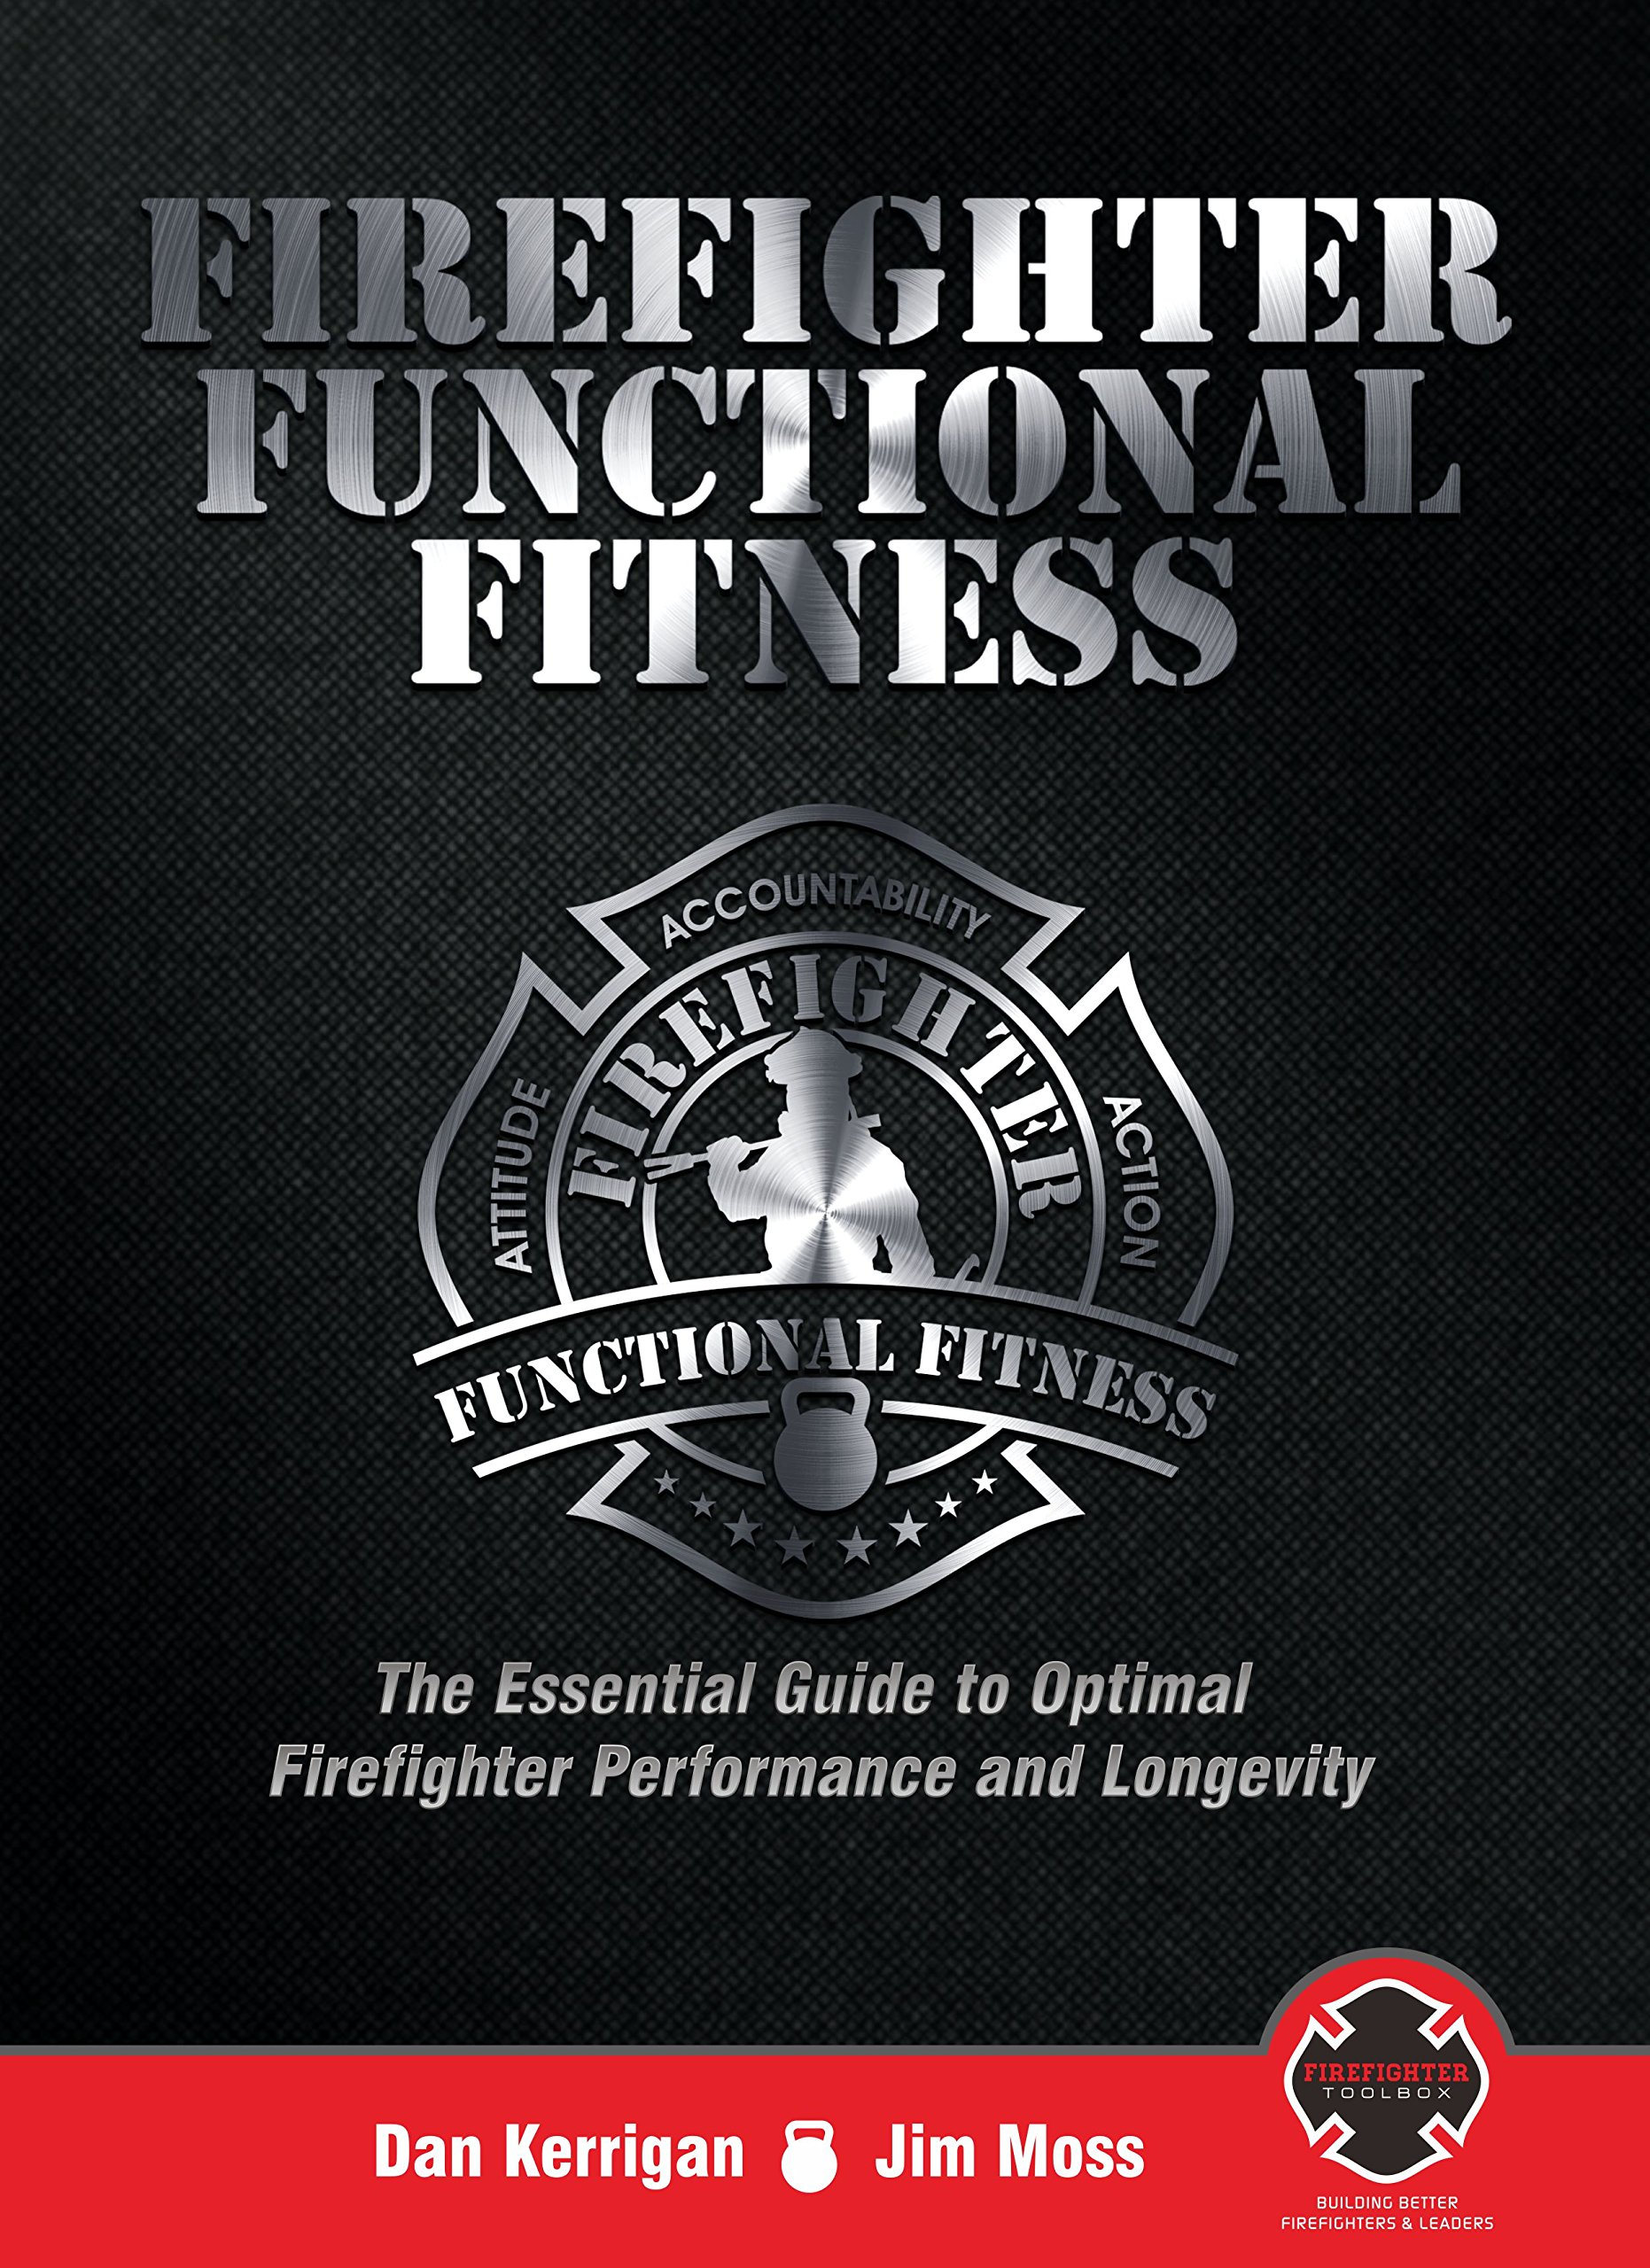 Firefighter Functional Fitness  The Essential Guide To Optimal Firefighter Performance And Longevity  English Edition